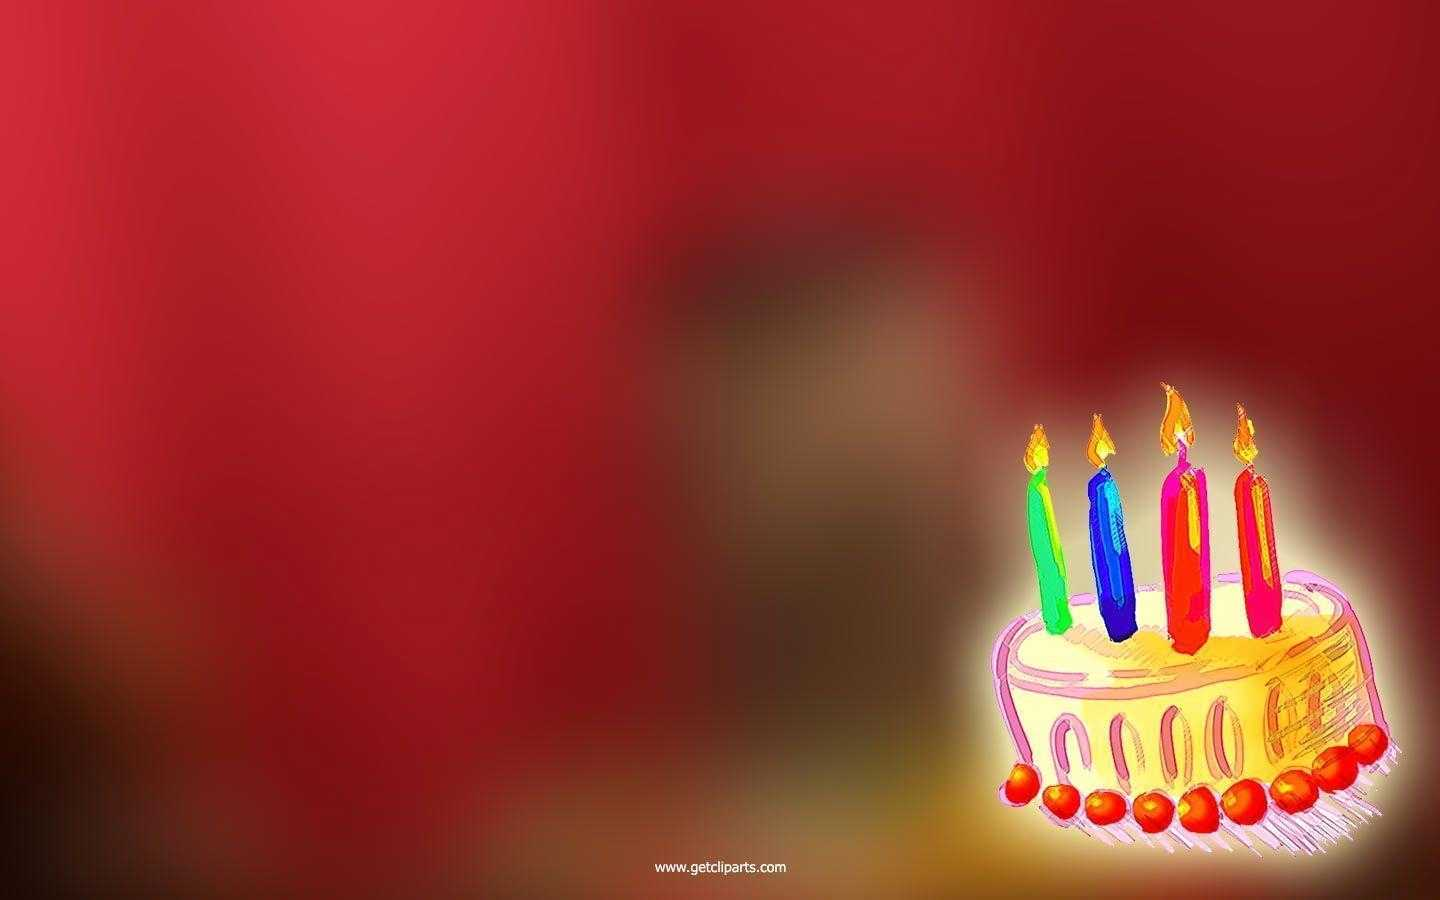 birthday background images hd ; hd-images-for-happy-birthday-new-birthday-backgrounds-wallpaper-cave-of-hd-images-for-happy-birthday